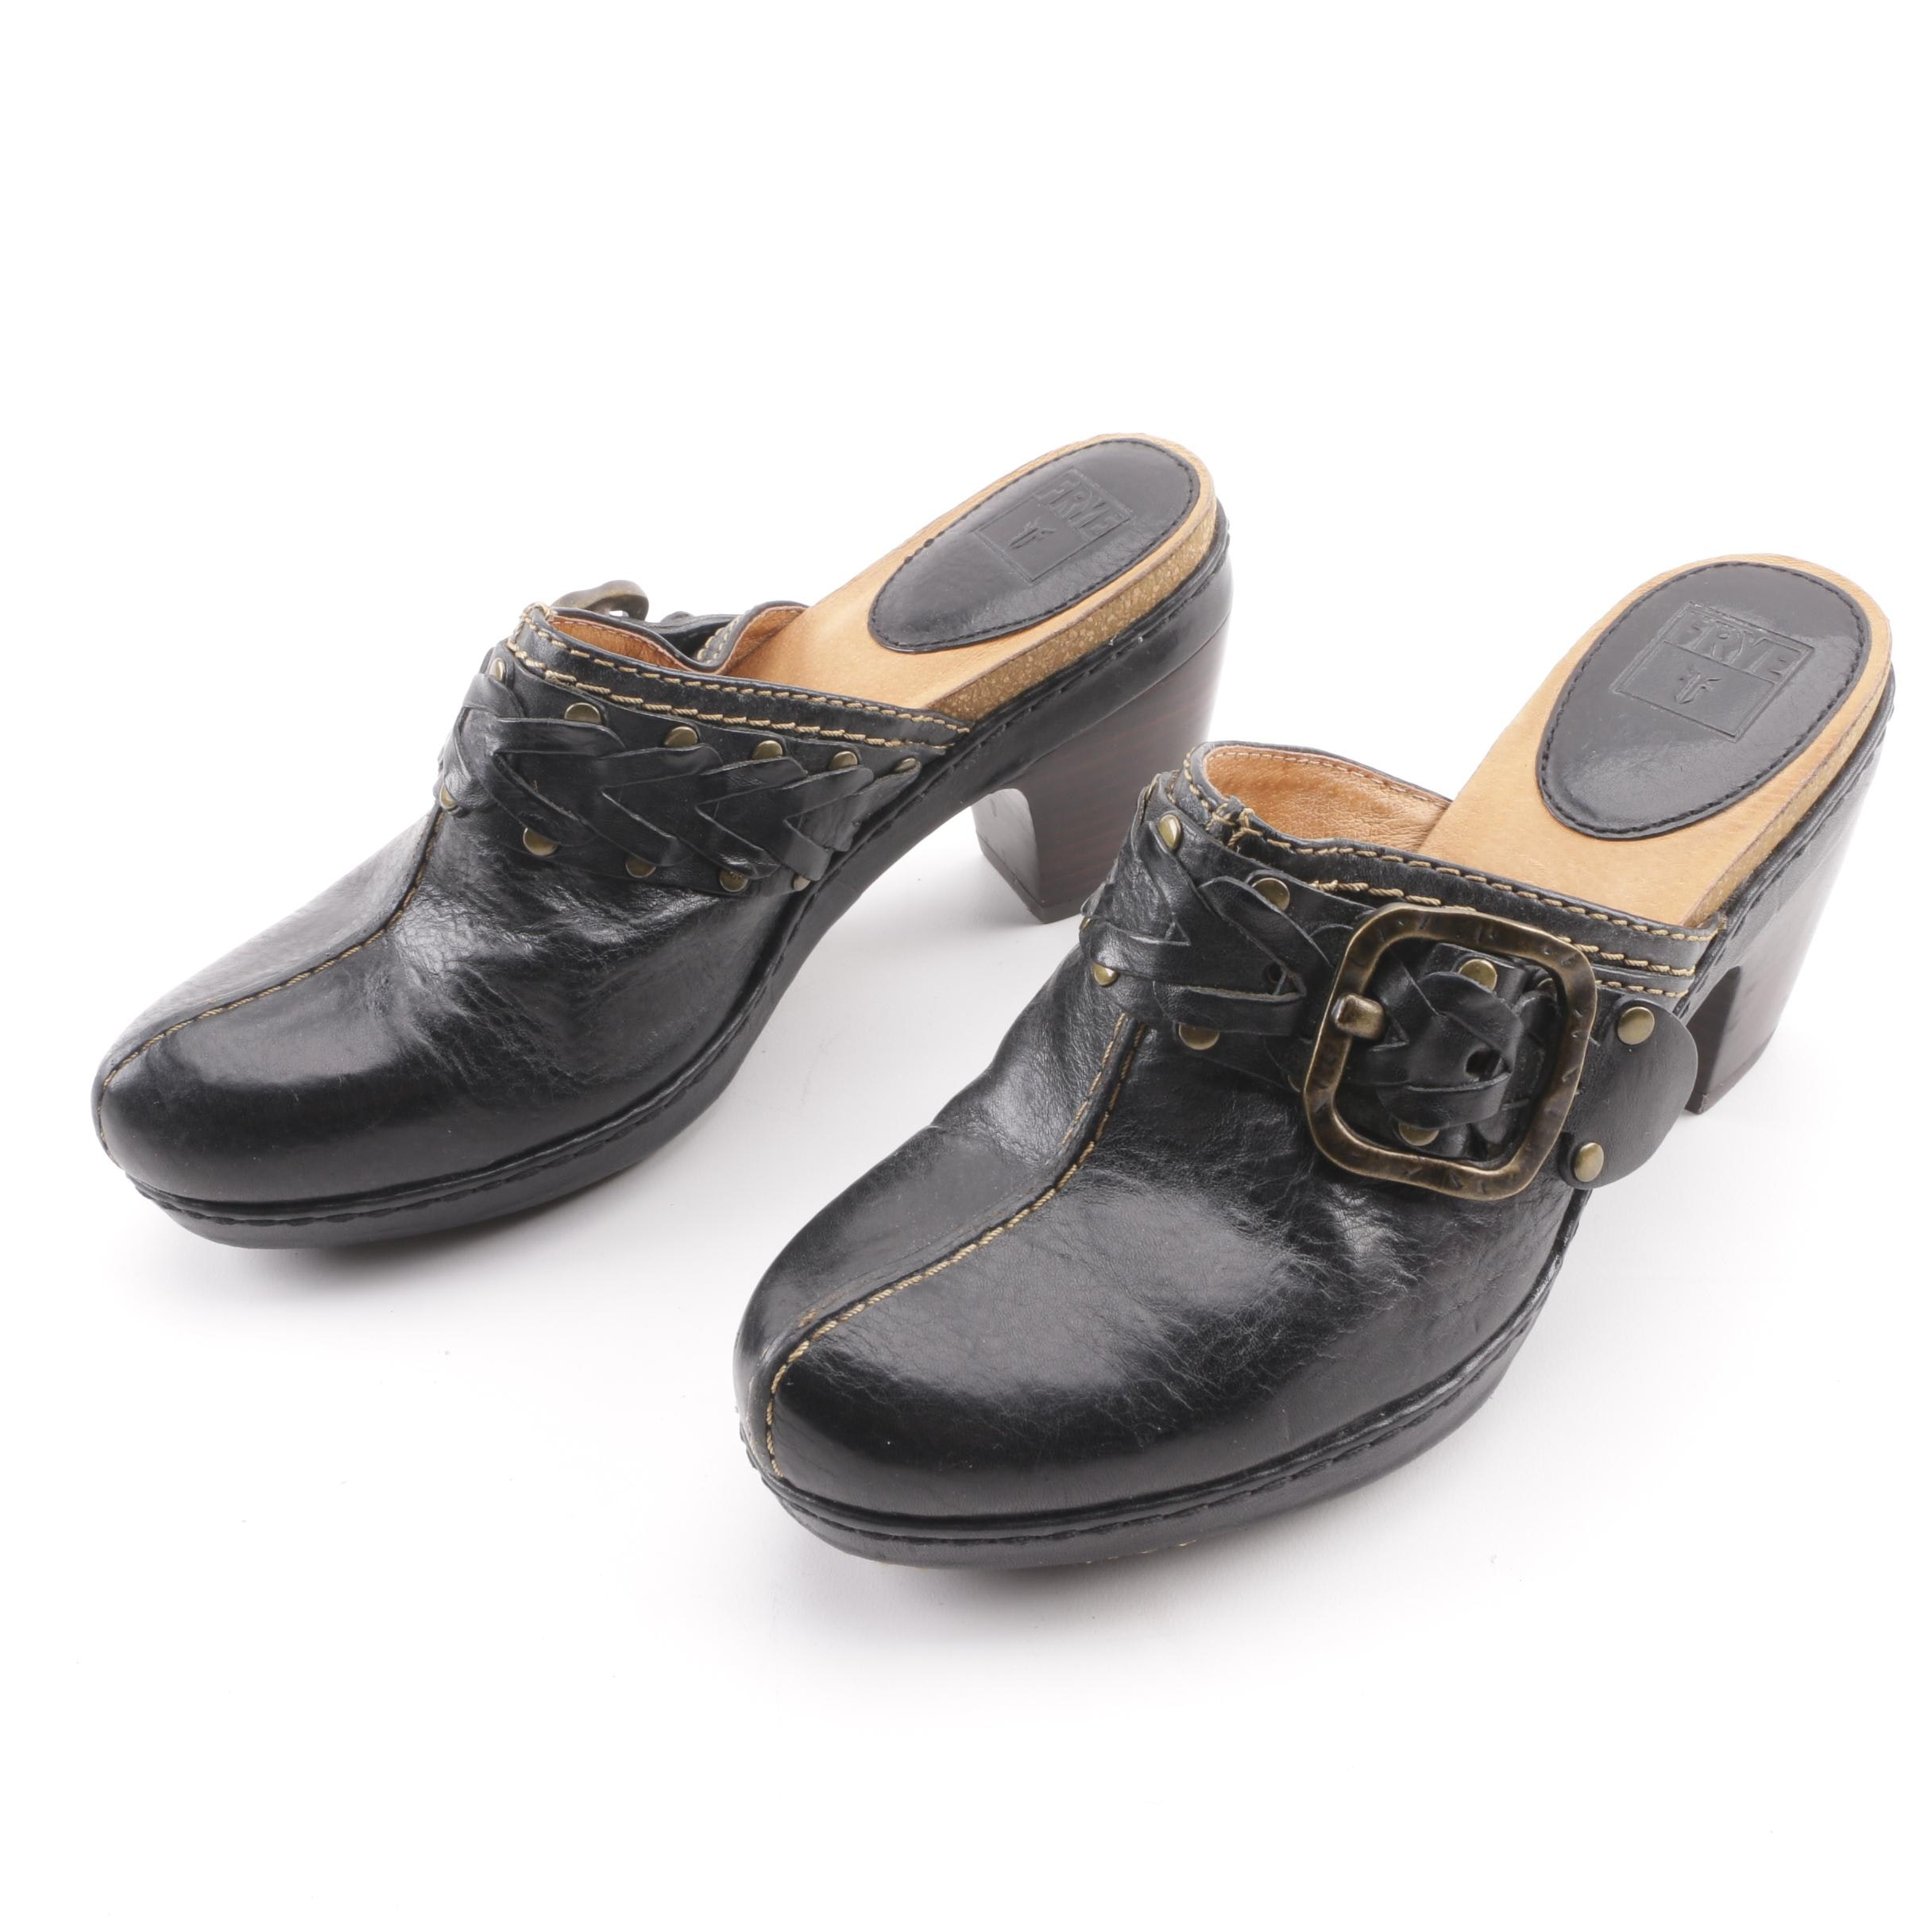 Women's Frye Candice Black Leather Woven Clogs